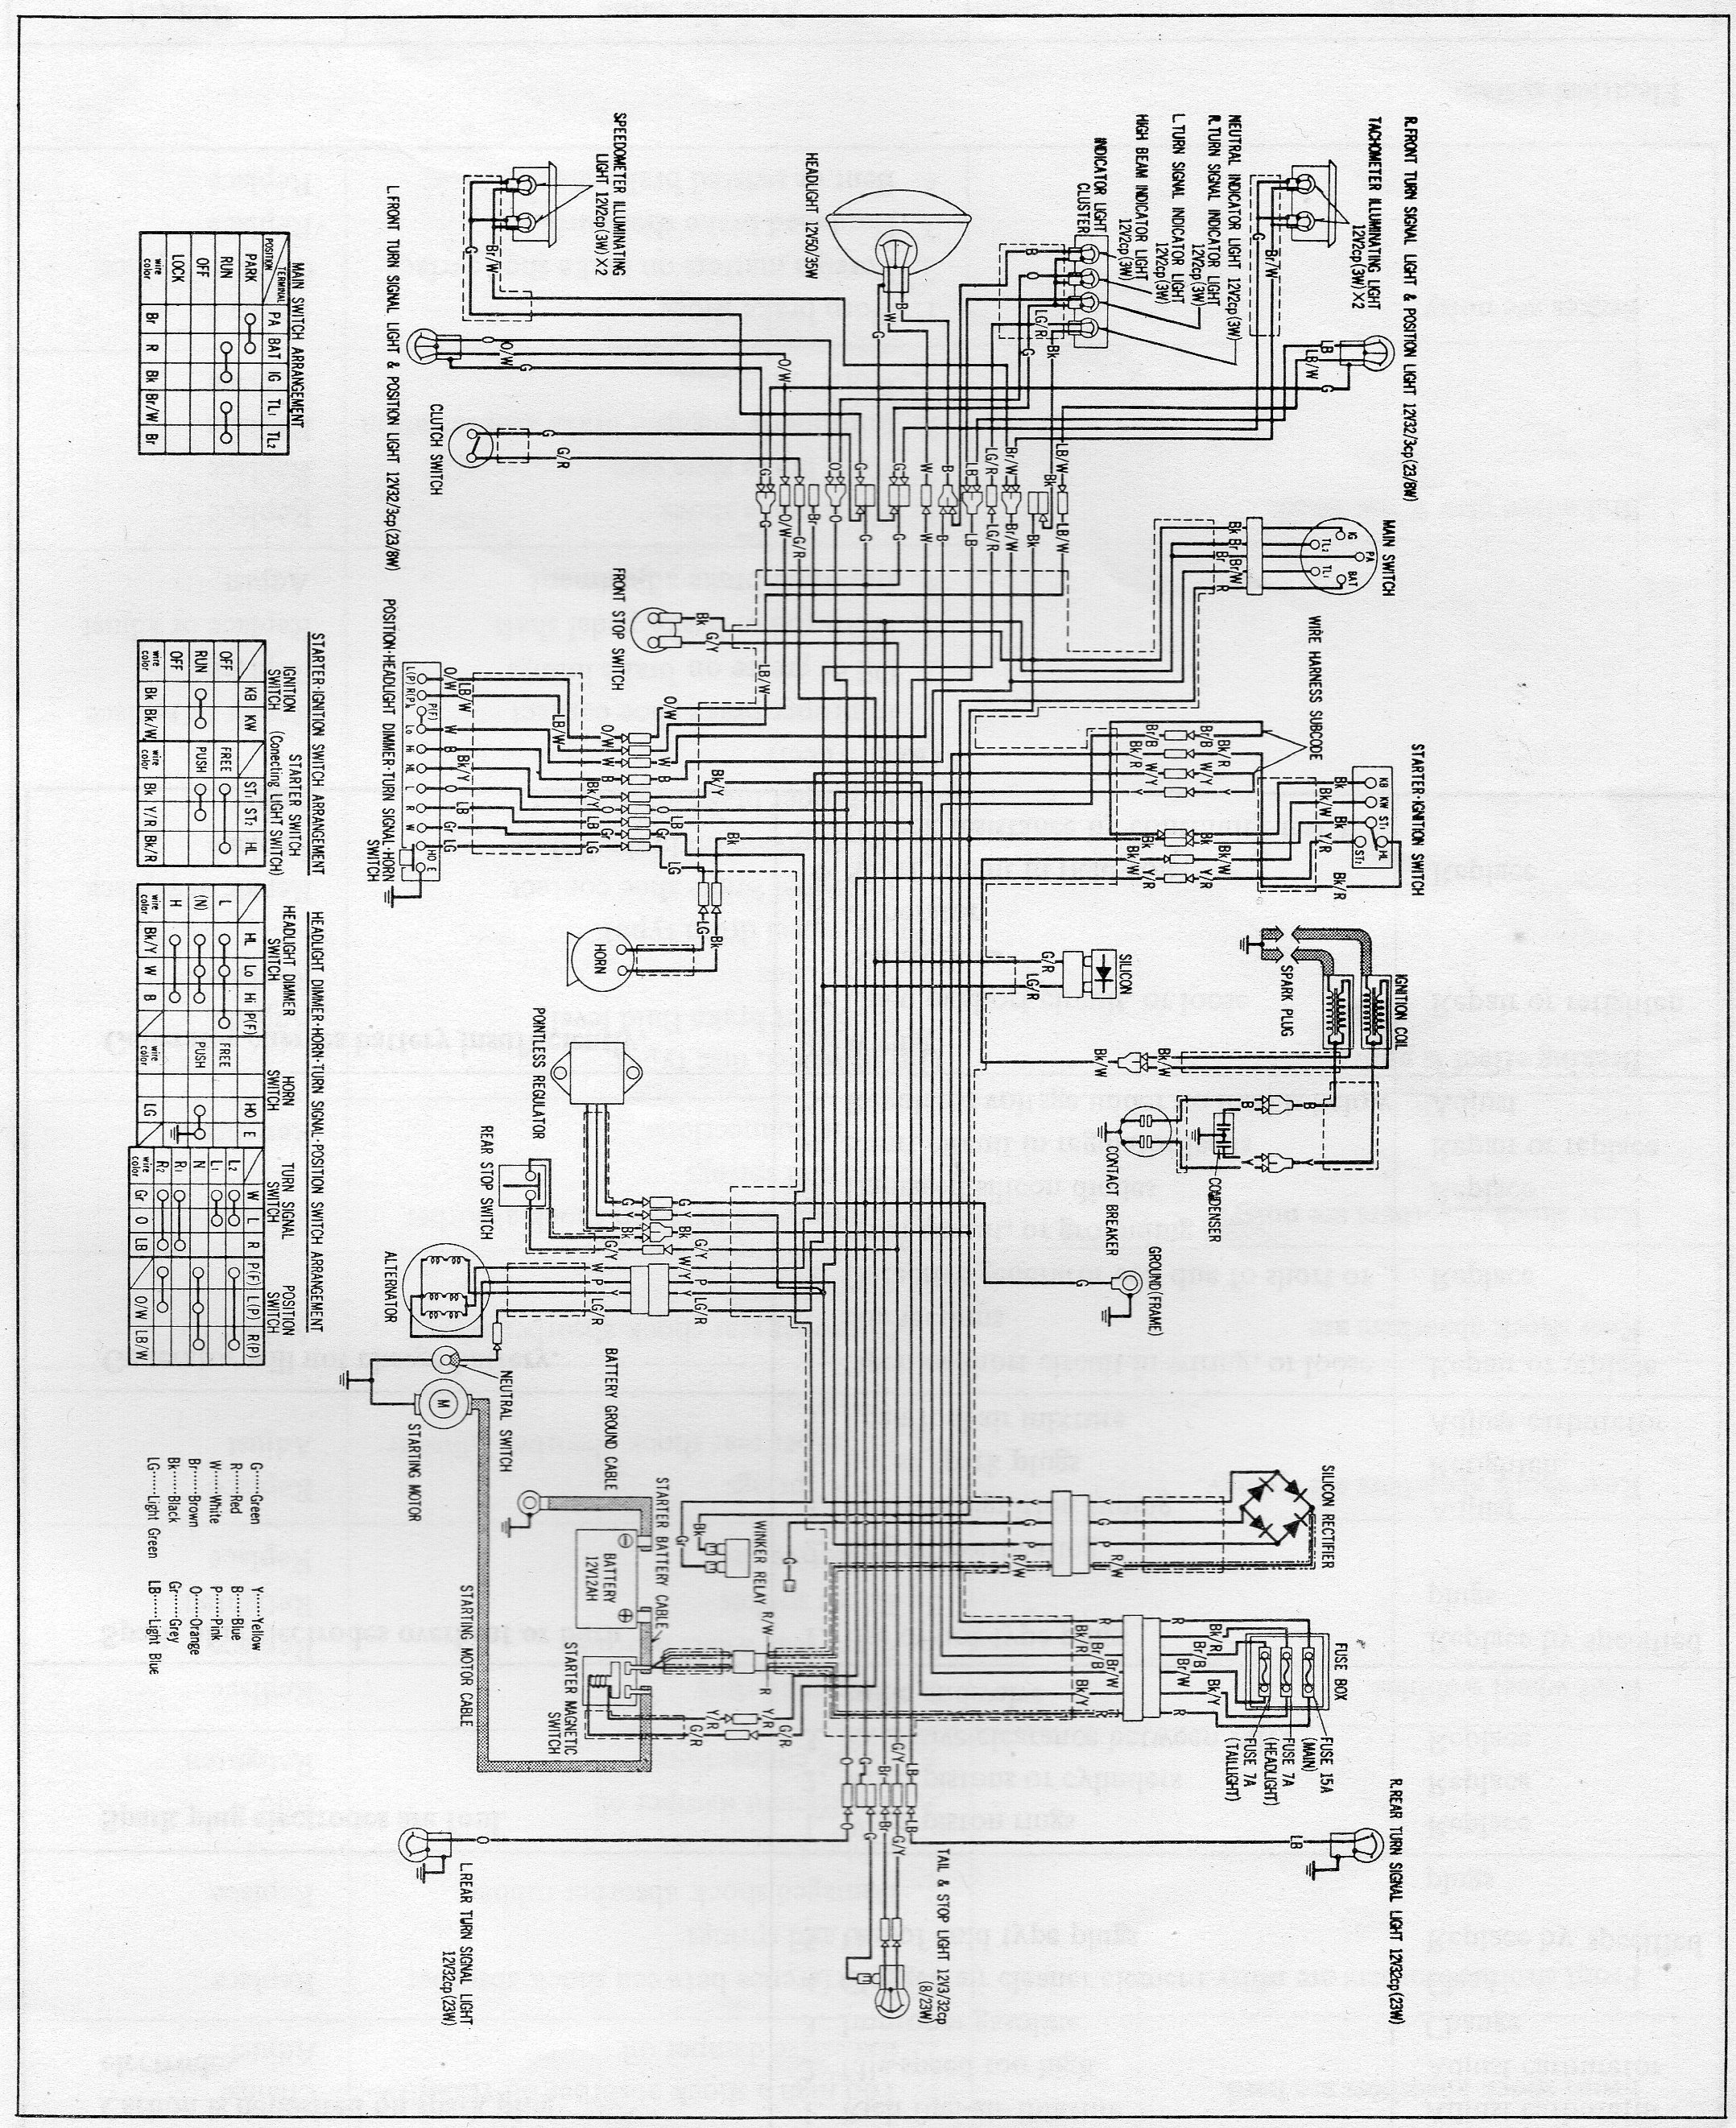 Cat 3406E Wiring Diagram from www.hondatwins.net